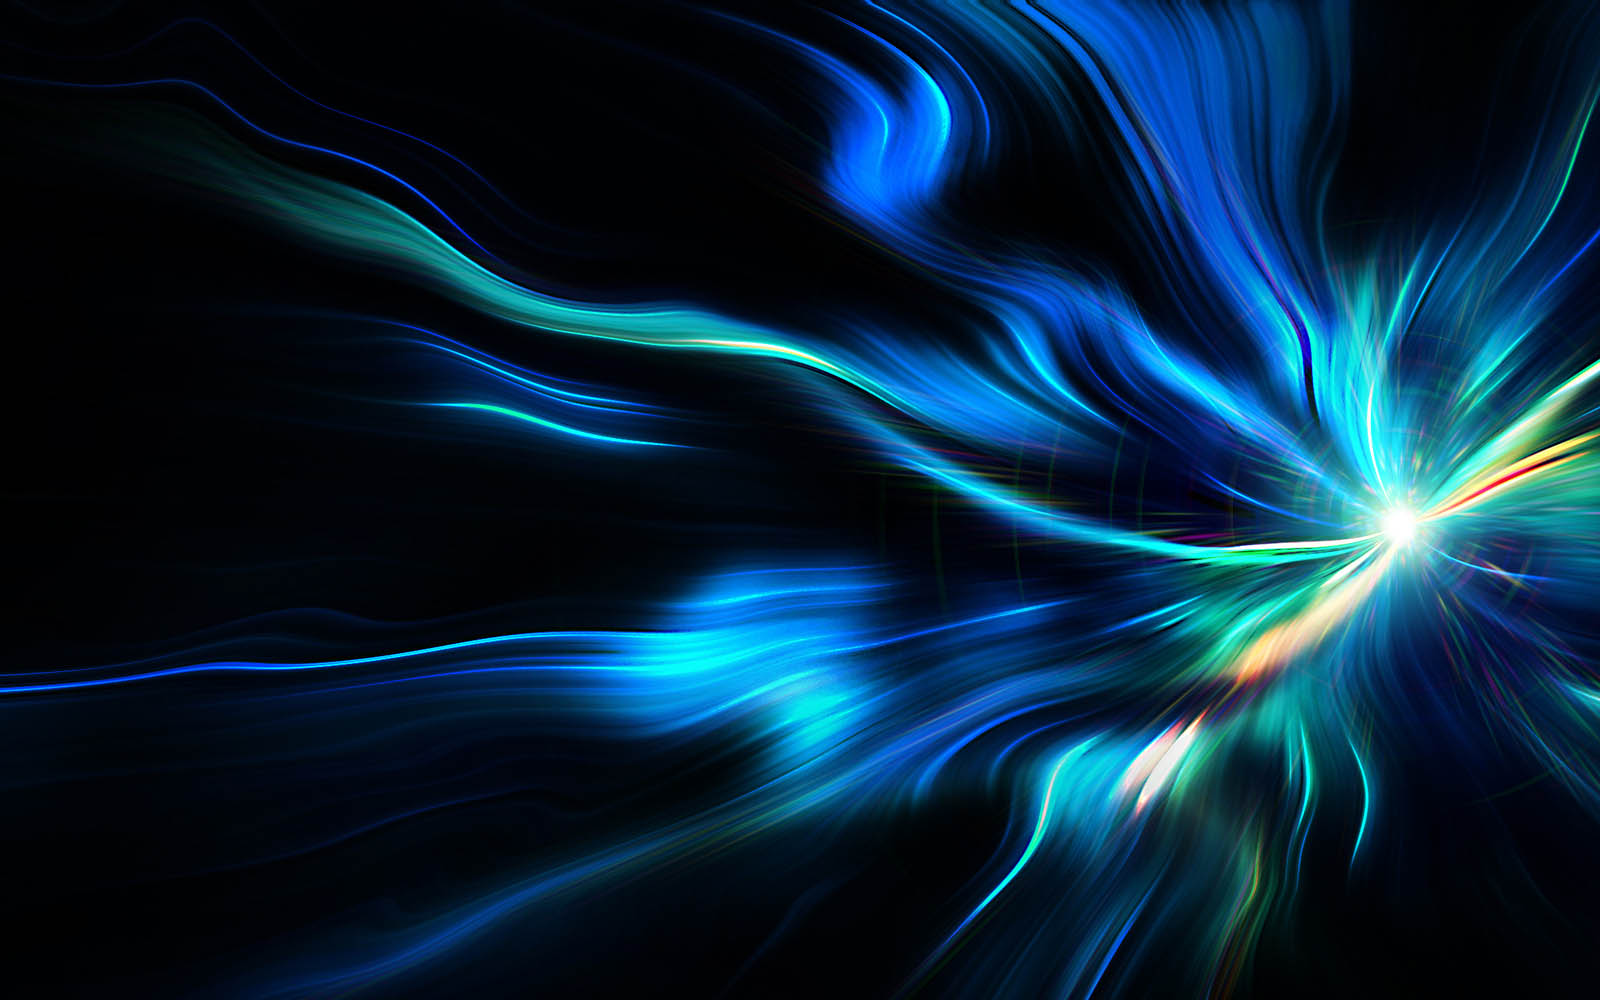 shining 3d wallpapers shining 3d desktop wallpapers shining 3d desktop 1600x1000